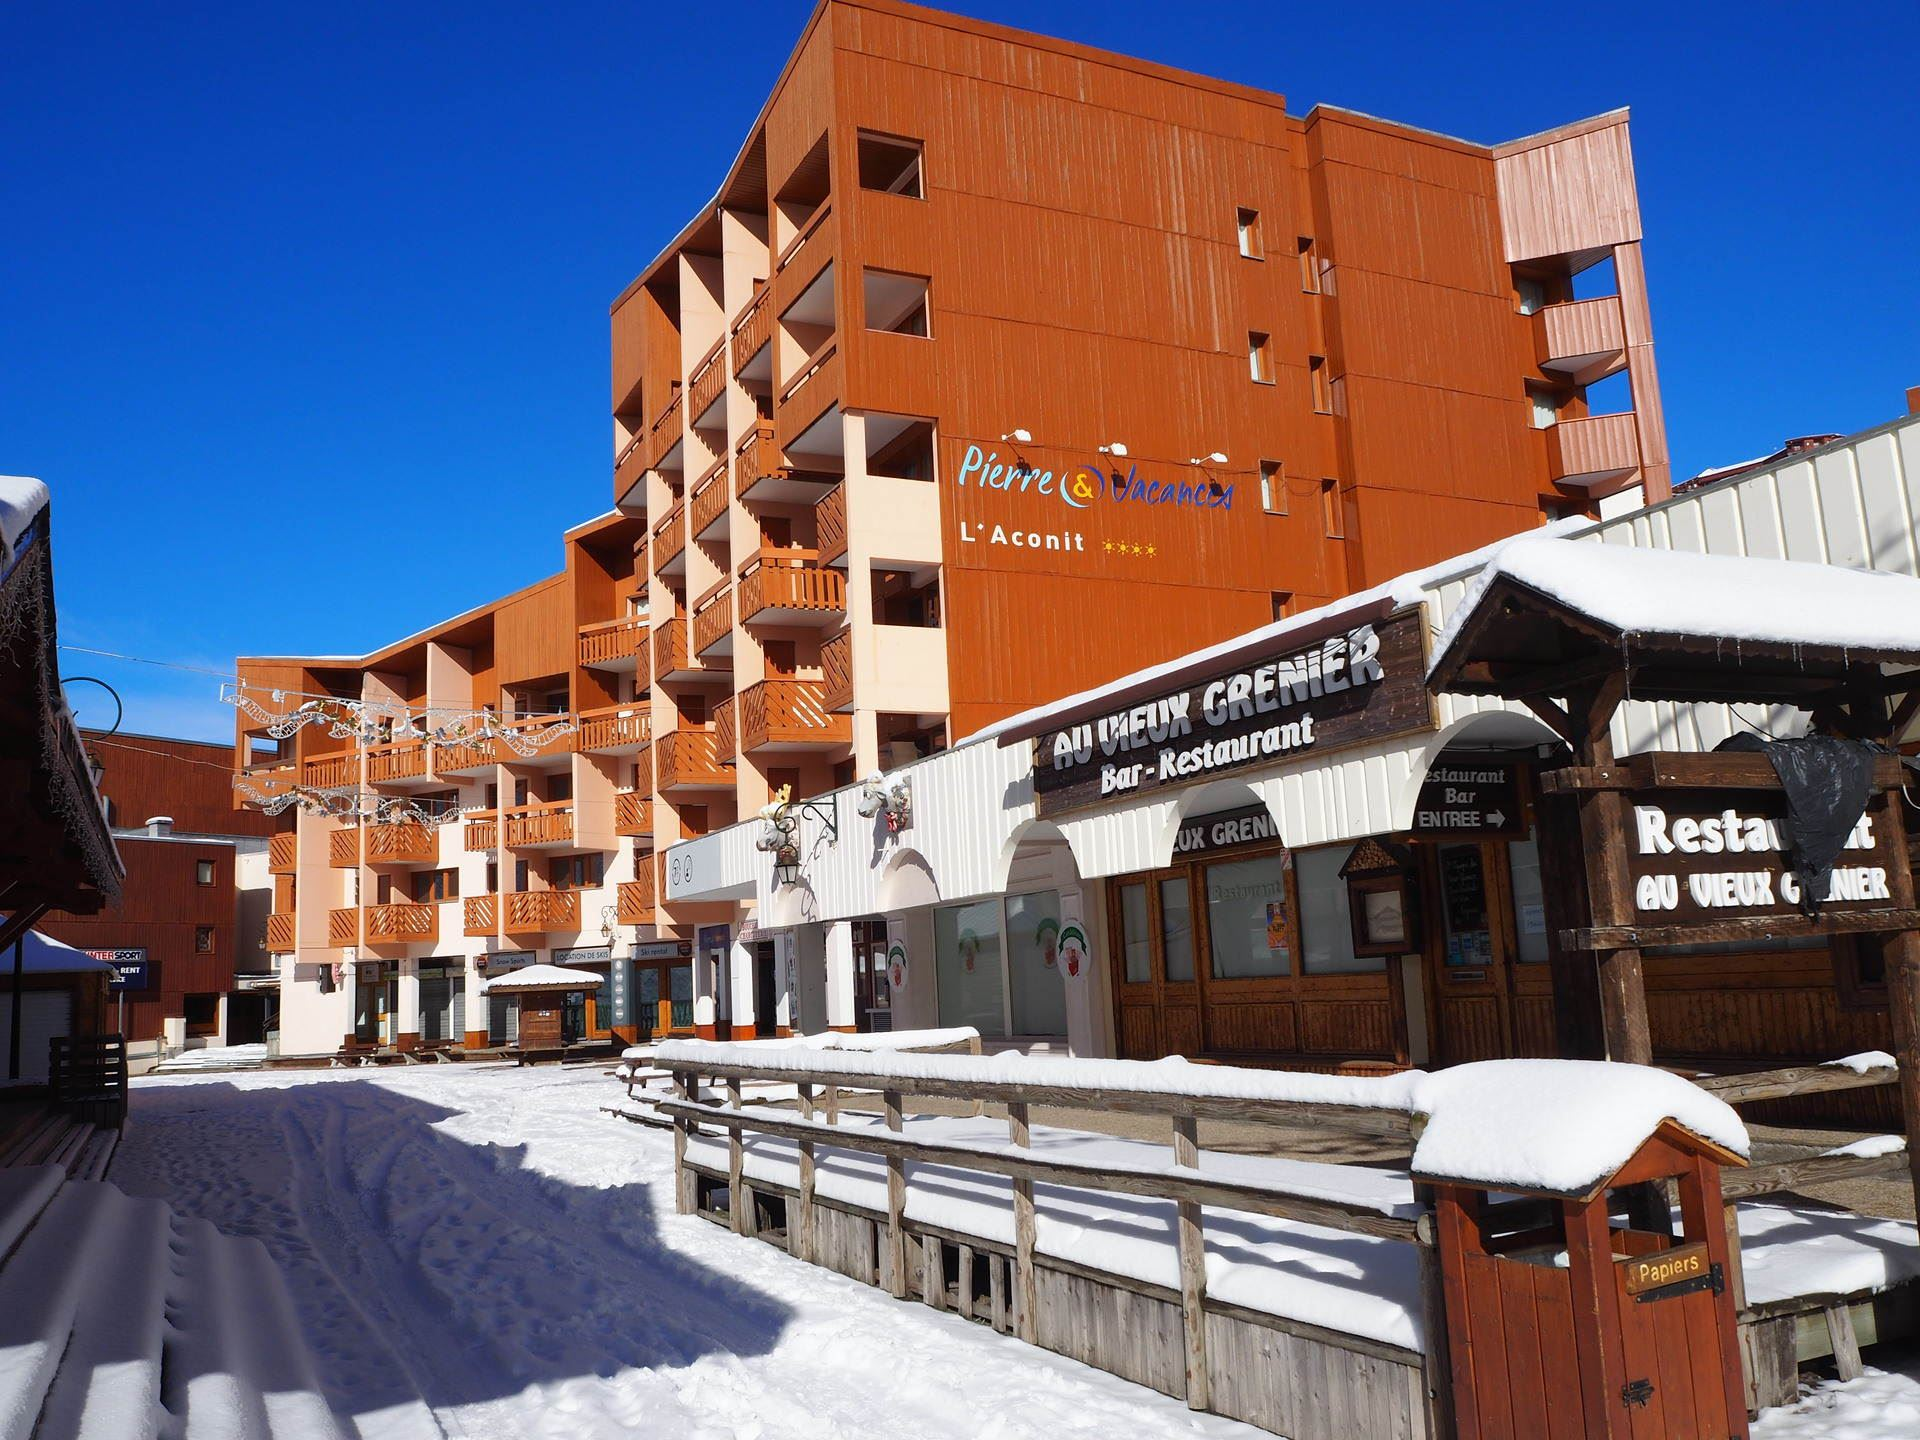 3 Room 6 Pers ski-in-ski-out / Aconit 322